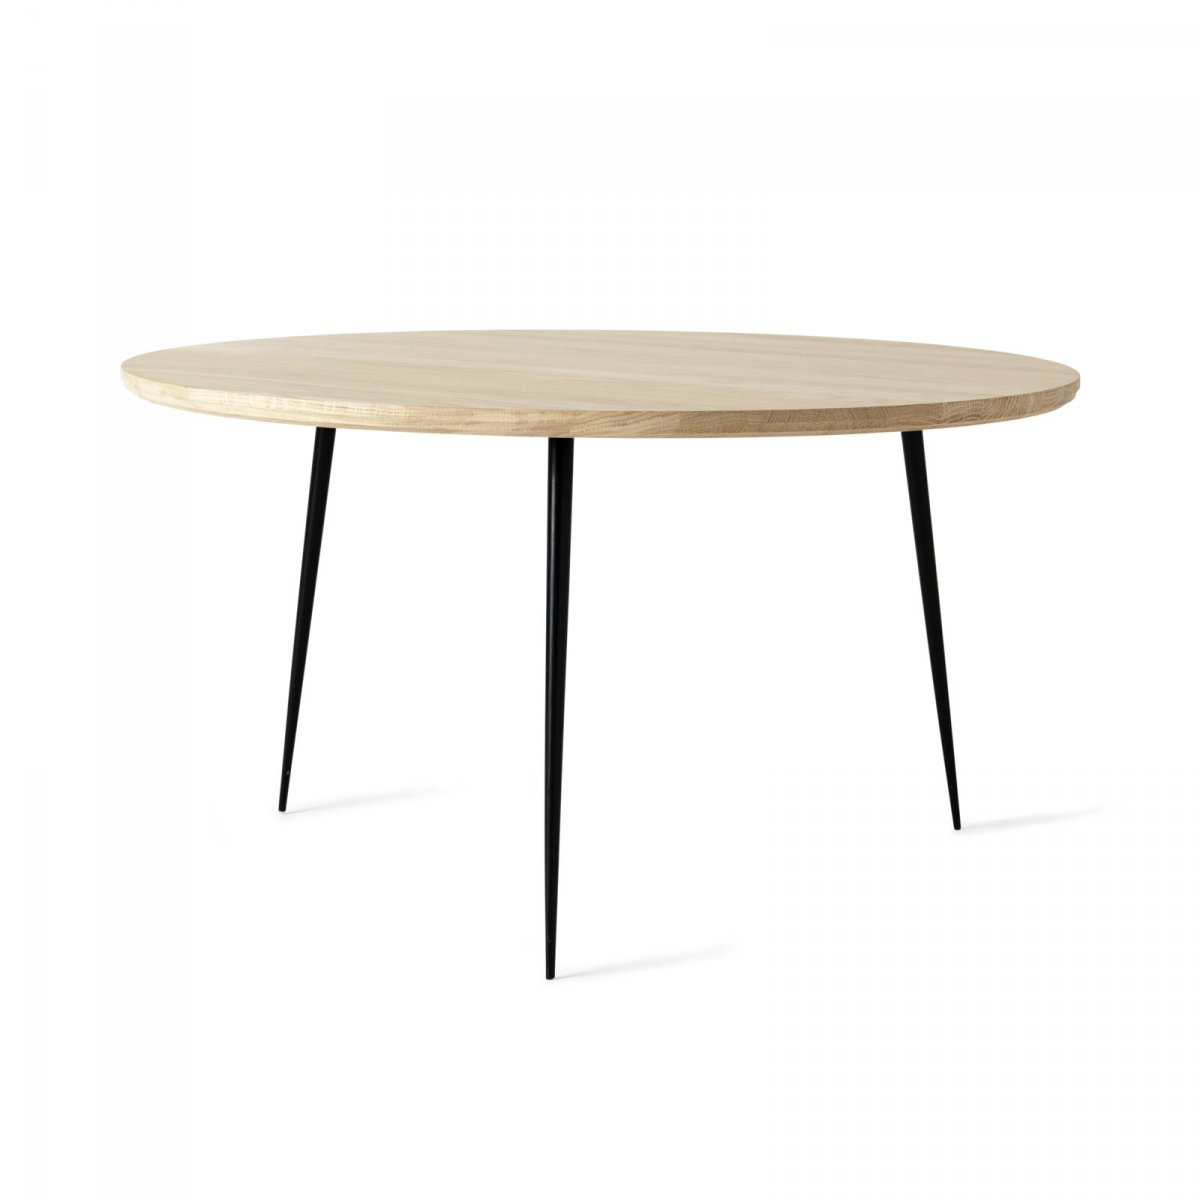 Disc Table, medium.